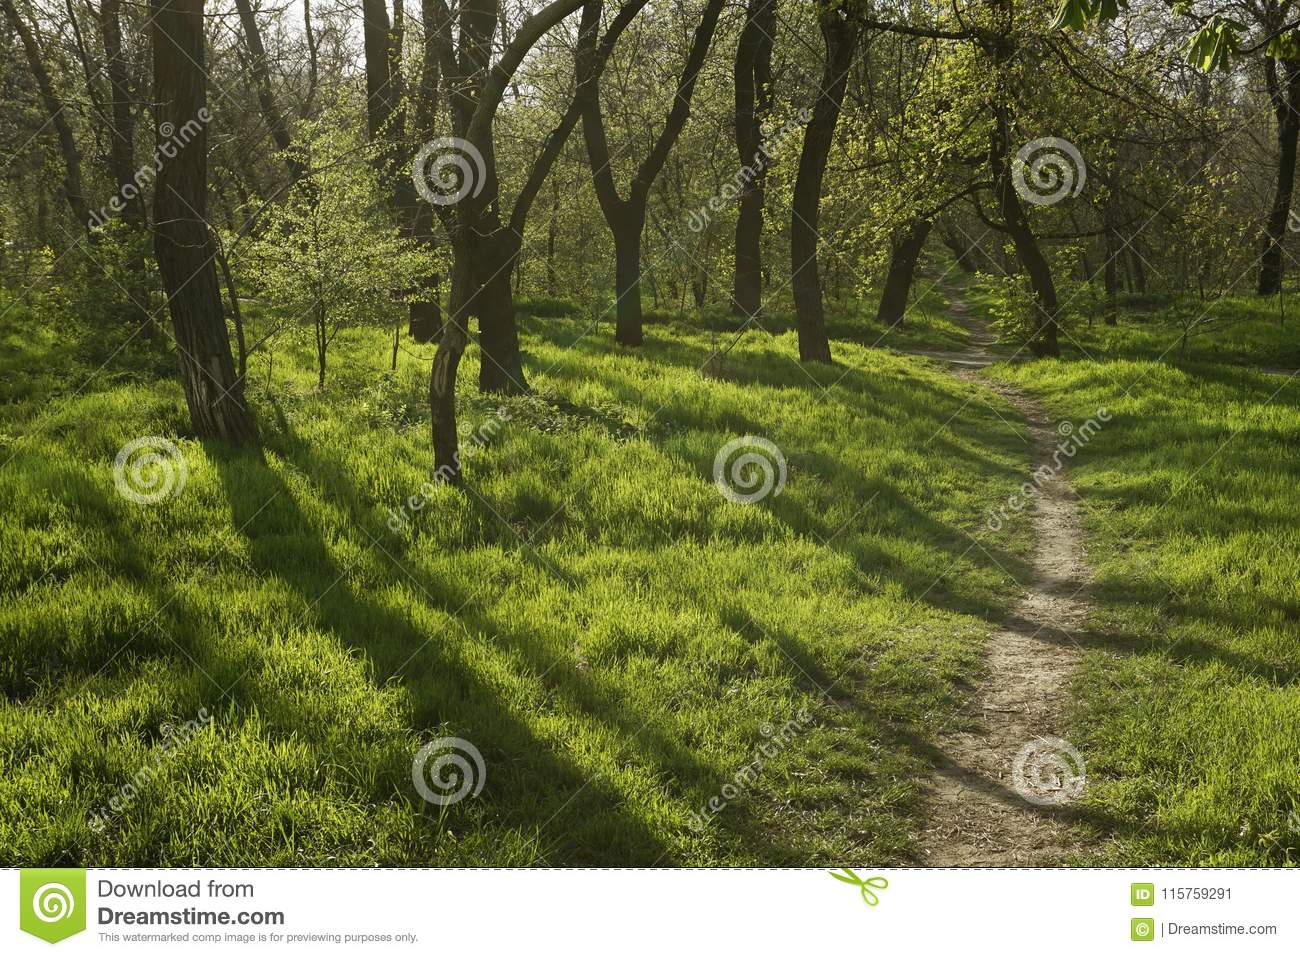 Download Sunset In The Forest With Long Tree Shadows And Green Grass Stock Image - Image of natural, adventure: 115759291